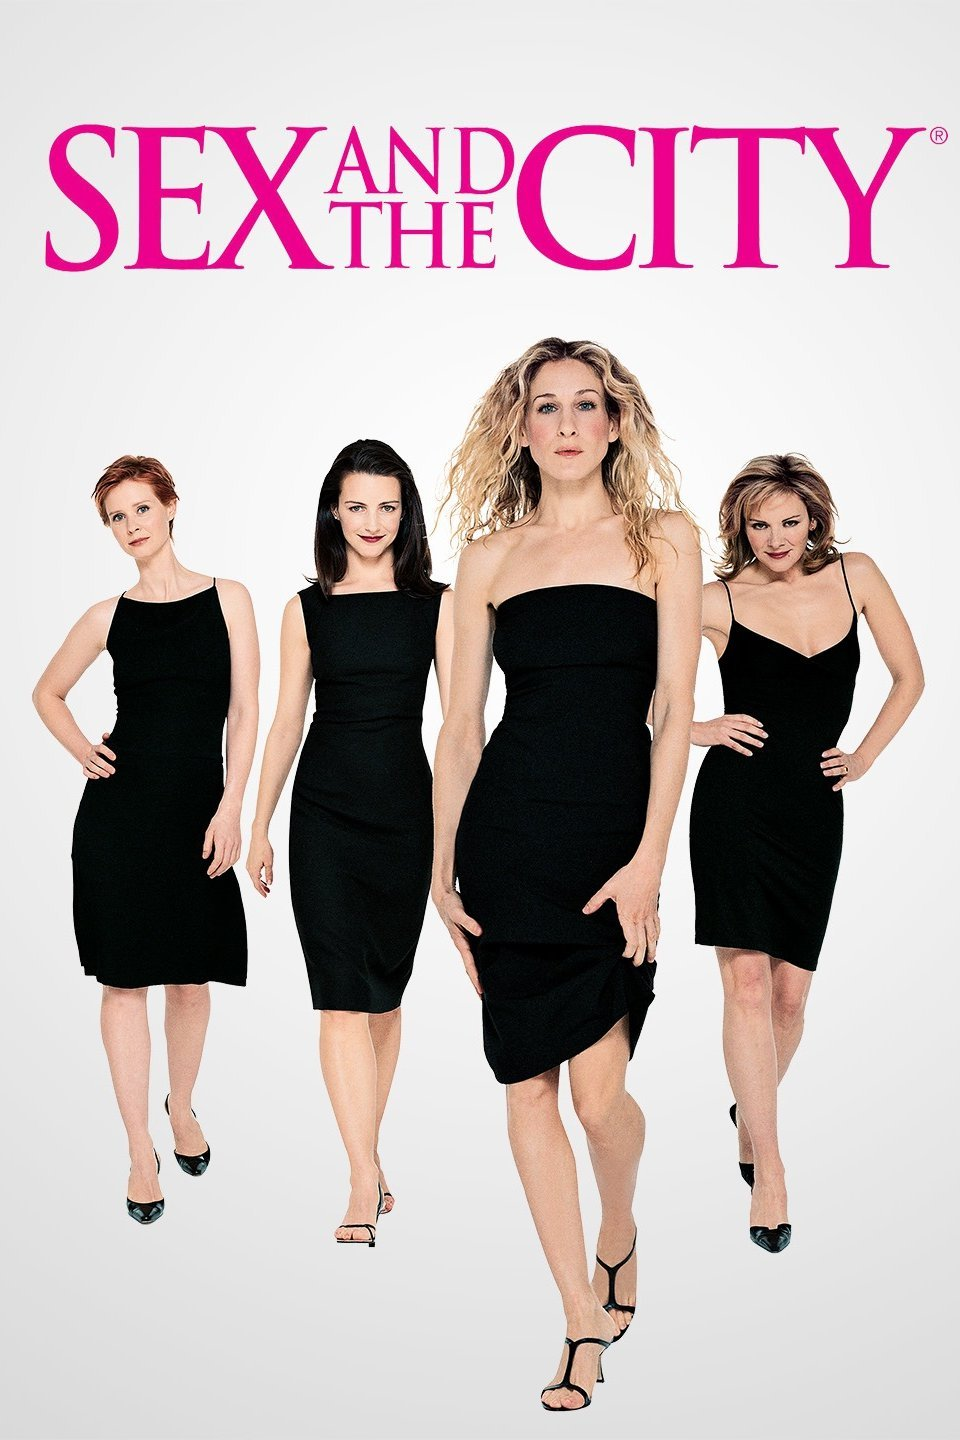 Sex and the city picks